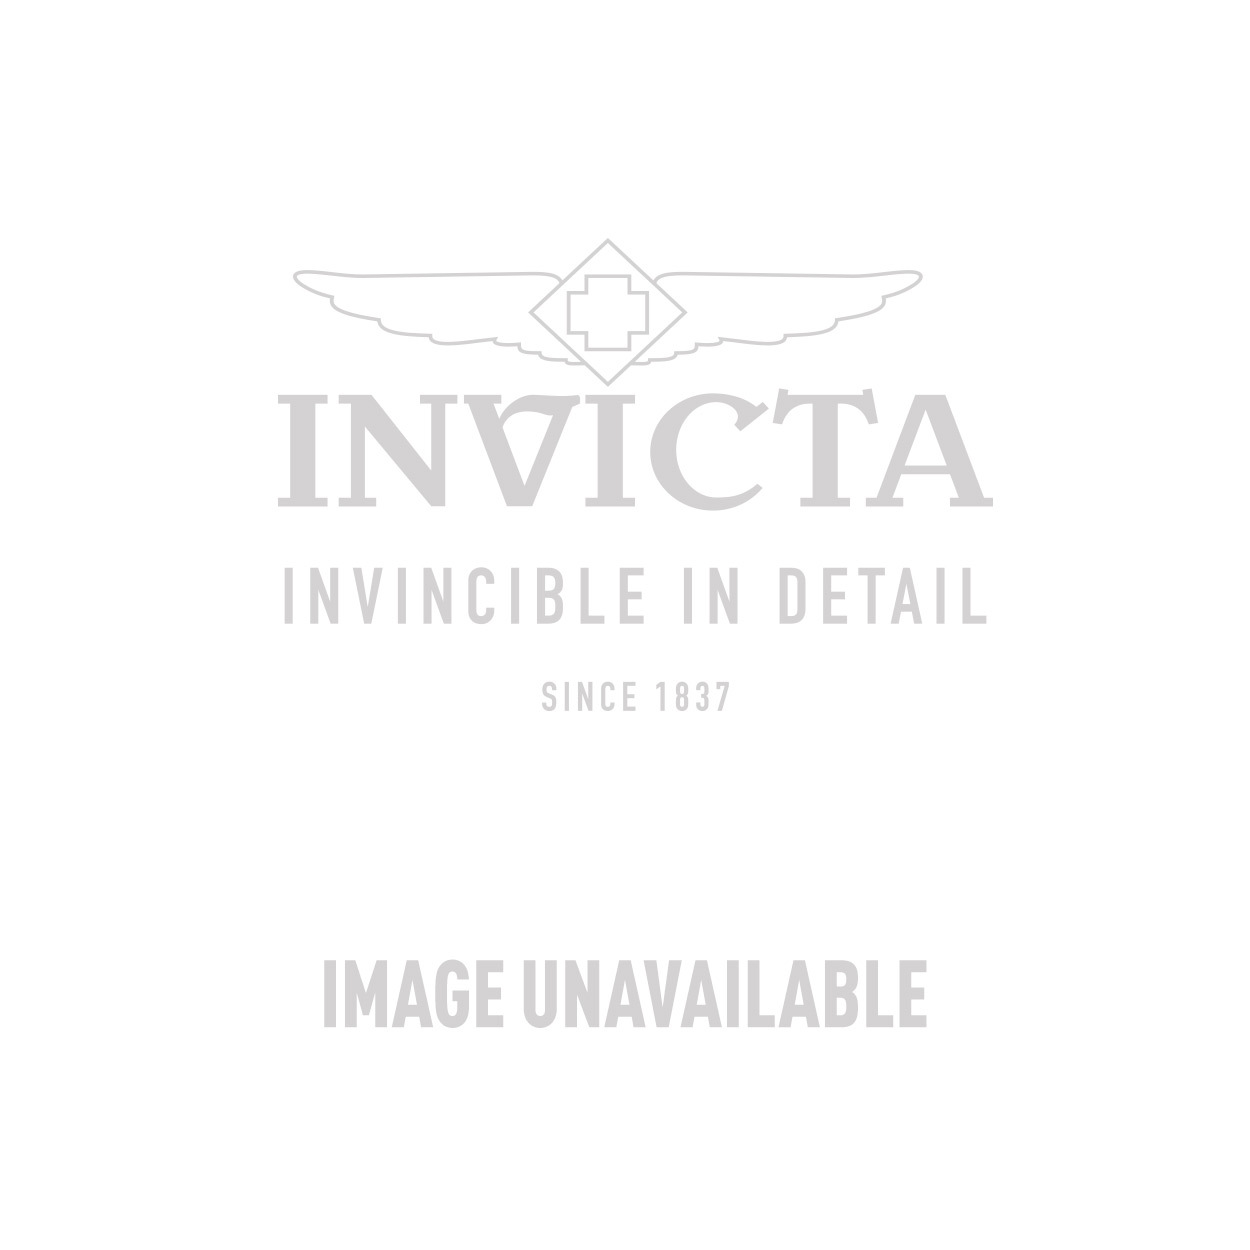 Invicta Sea Base Swiss Movement Quartz Watch - Stainless Steel case with Blue tone Polyurethane band - Model 20178